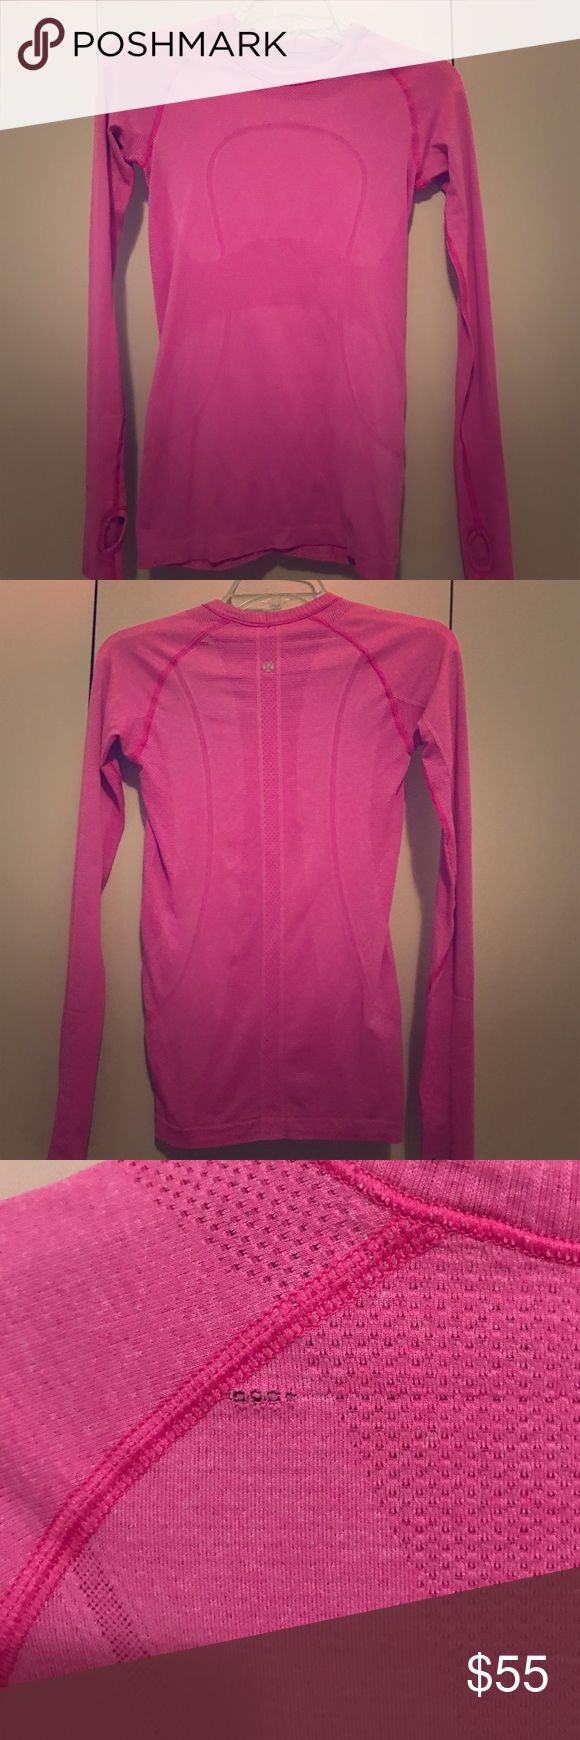 Lululemon run swiftly tech long sleeve!! *****Clearance Sale***** Super cute!! Tiny defect (shown in picture) otherwise perfect all around. Not really noticeable once on. Price Firm!! CLEARANCE sale lululemon athletica Tops Tees - Long Sleeve